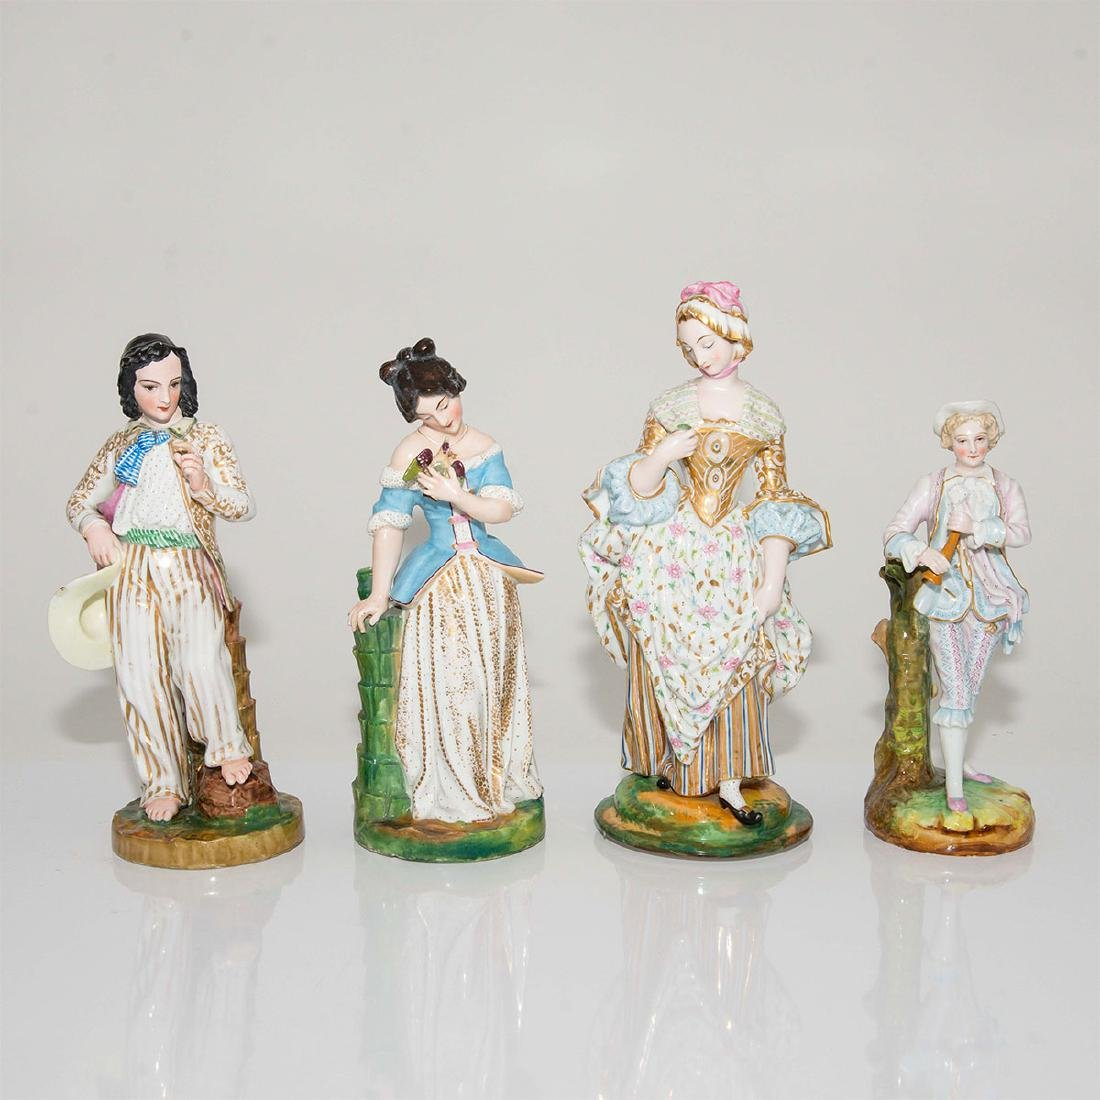 GROUP OF 4 ANTIQUE CONTINENTAL PORCELAIN STATUES